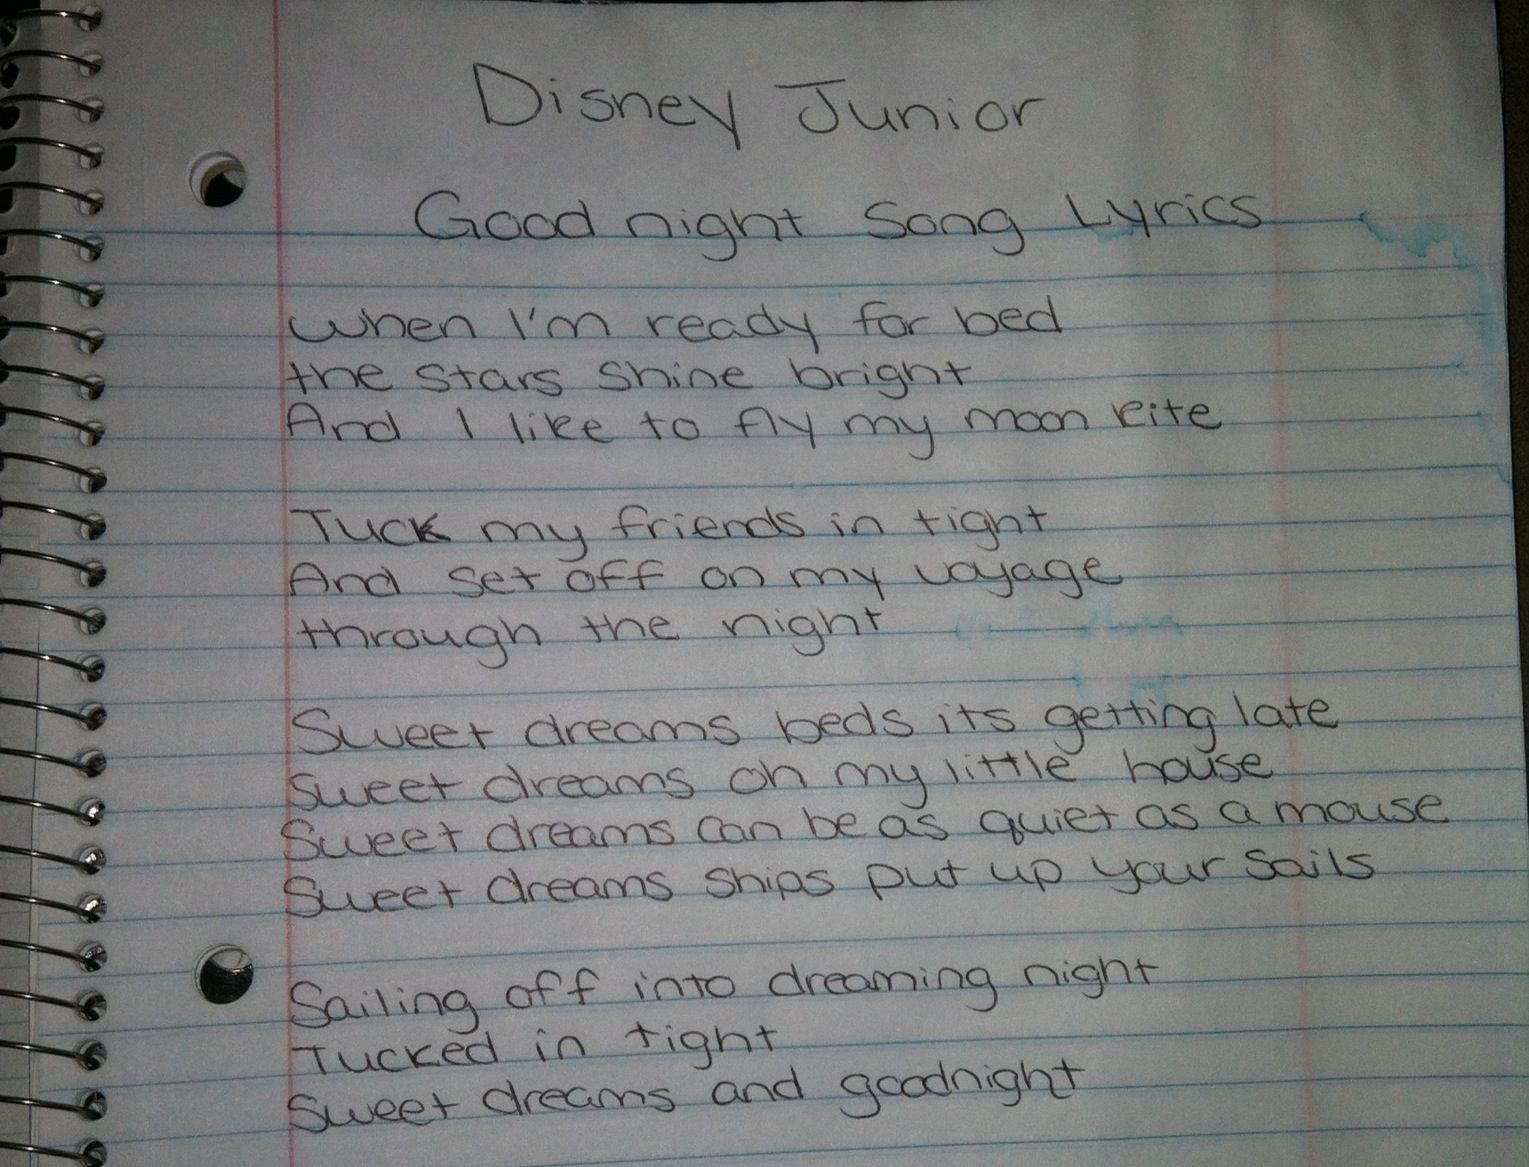 Good night song lyrics on Disney Junior! Your welcome! When I'm ...